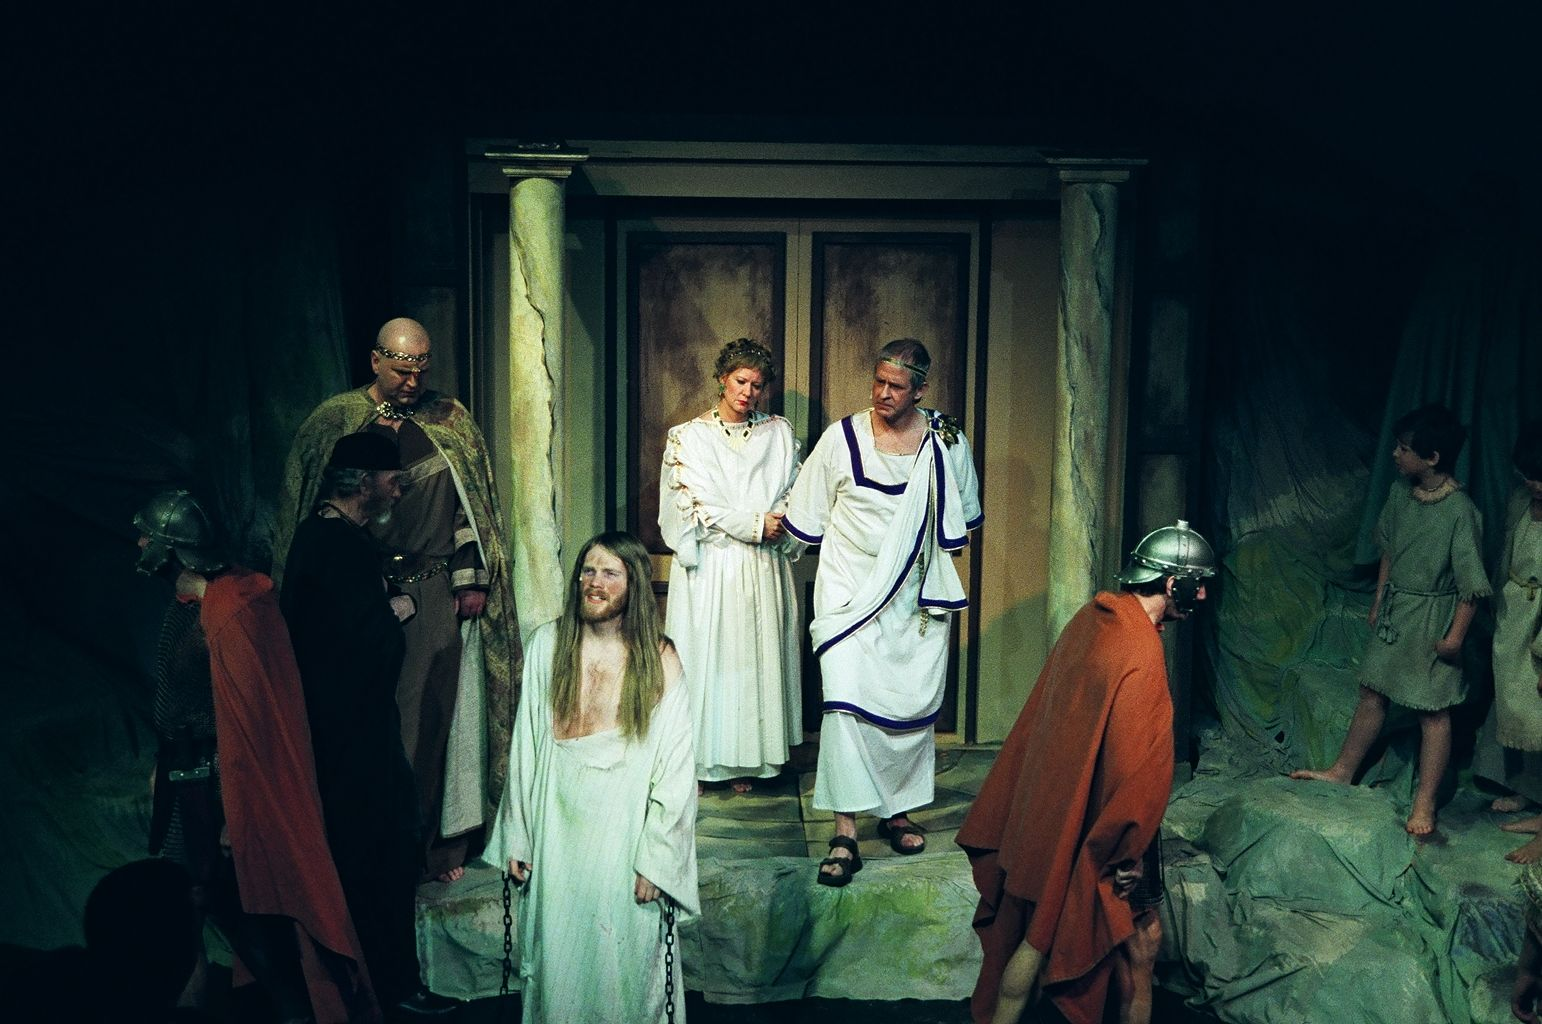 Jim Pritchard, Clyde Kelly, Darren Stewart, Emilie Johnston, Greg Spielman, David Young and Steven Johnson in Jesus Christ Superstar